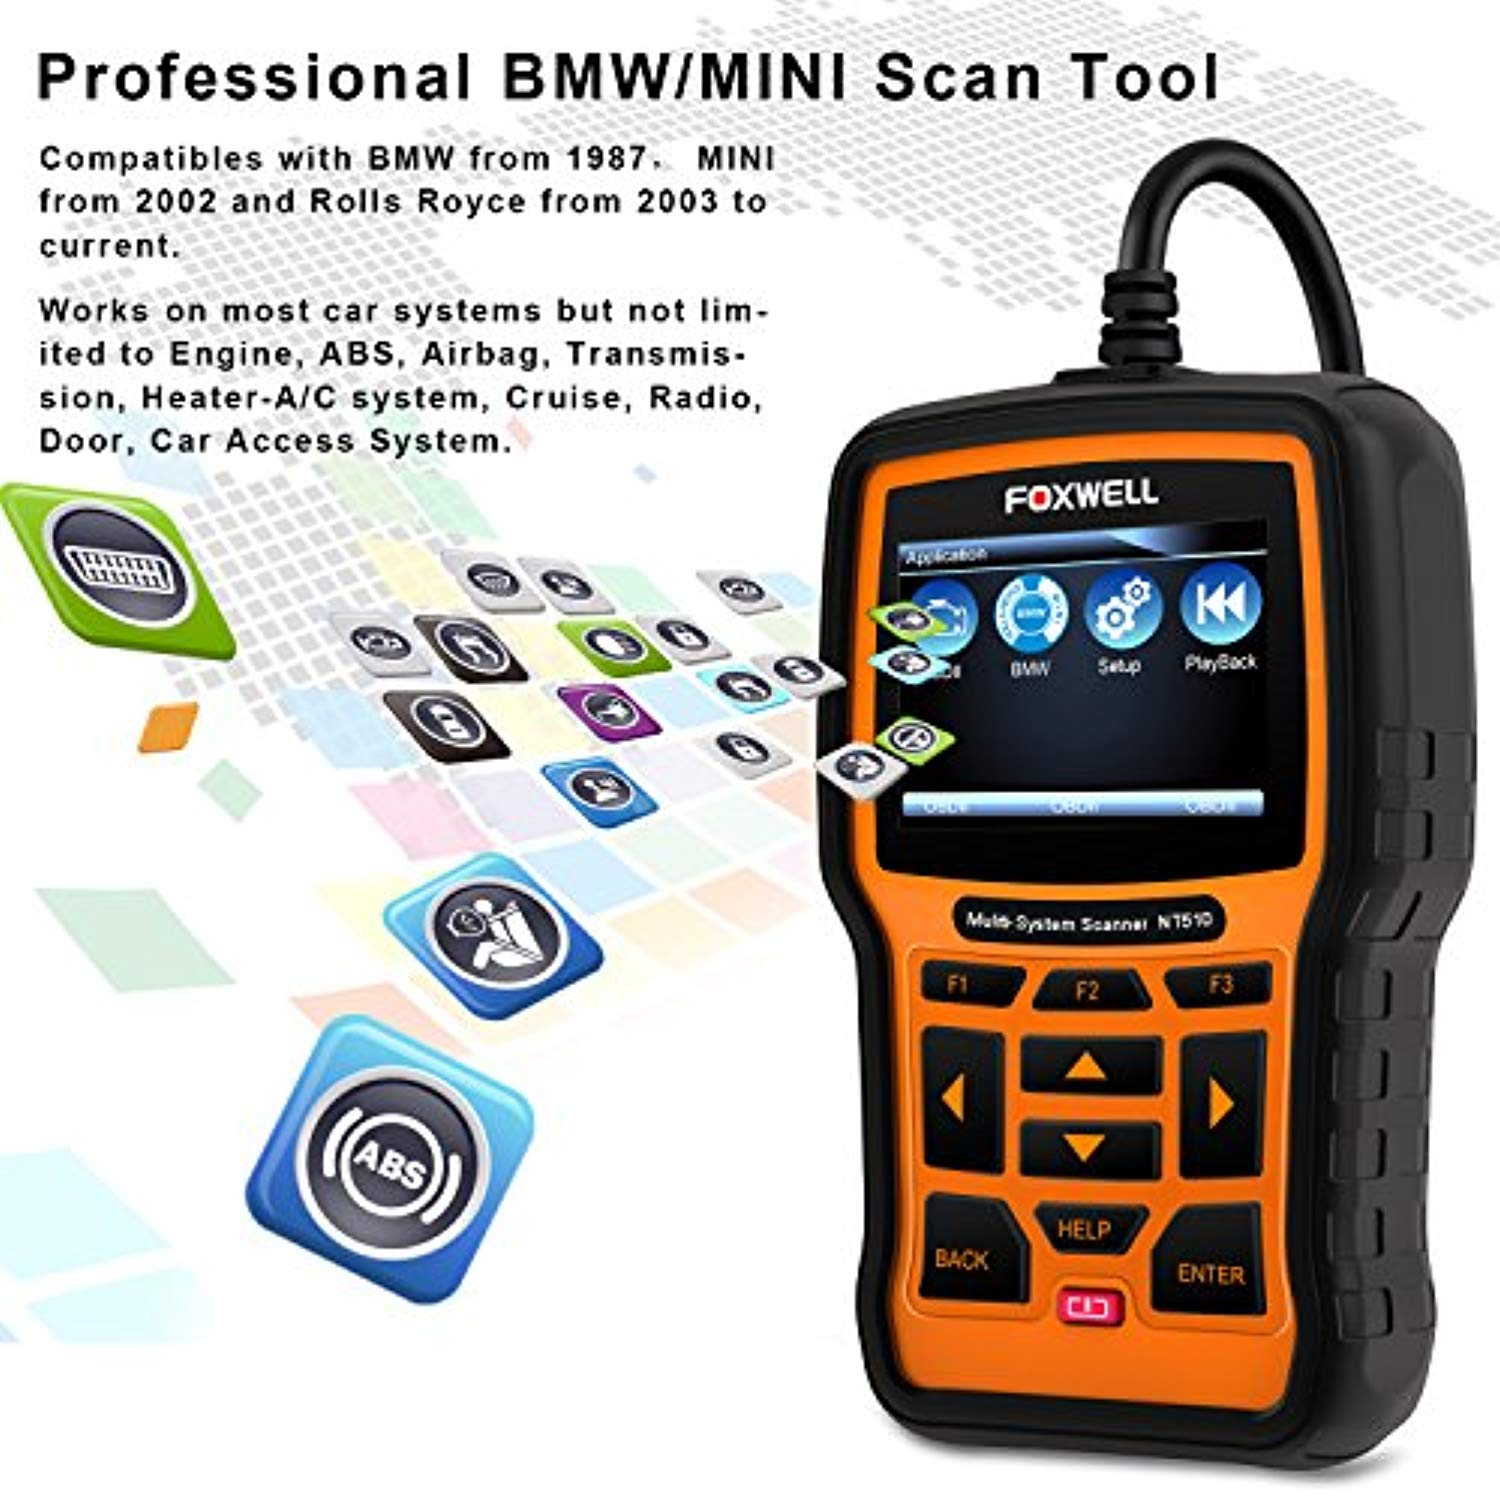 FOXWELL NT510 Automotive Scanner for BMW OBD II Obd2 Code